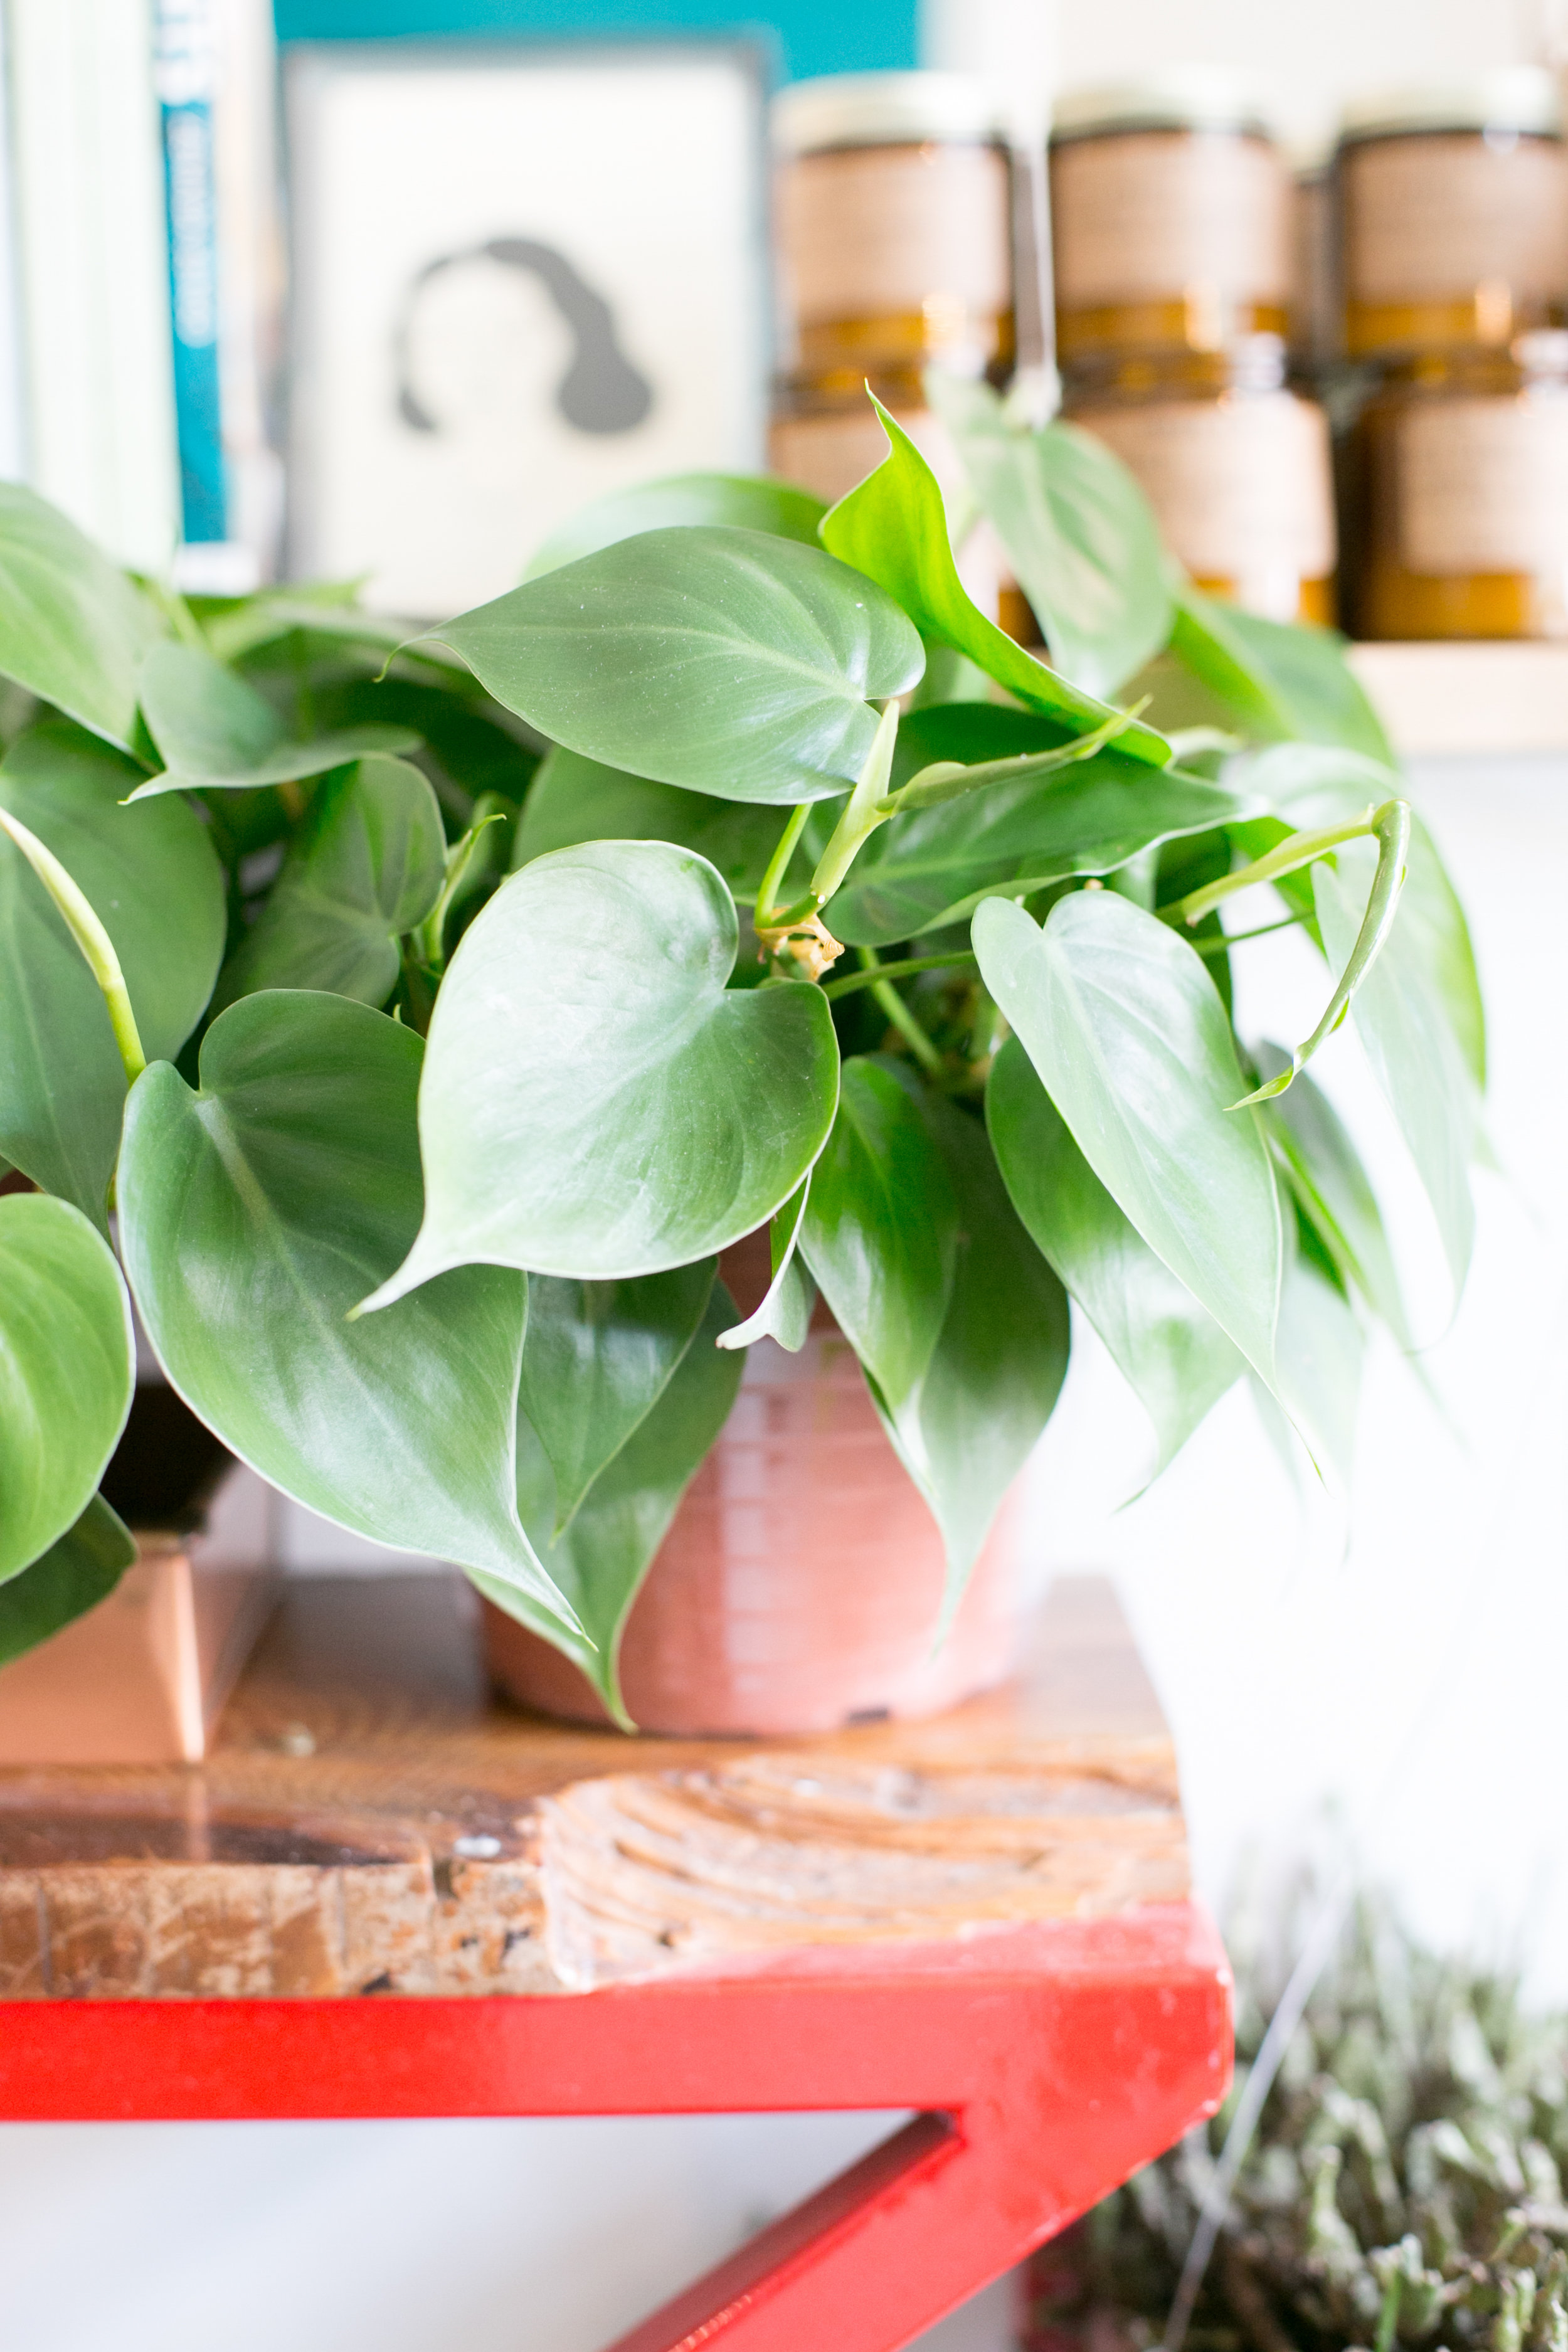 Heartleaf philodendron  (Philodendron cordatum)  look great on a shelf or in a plant hanger, where they have room to vine.